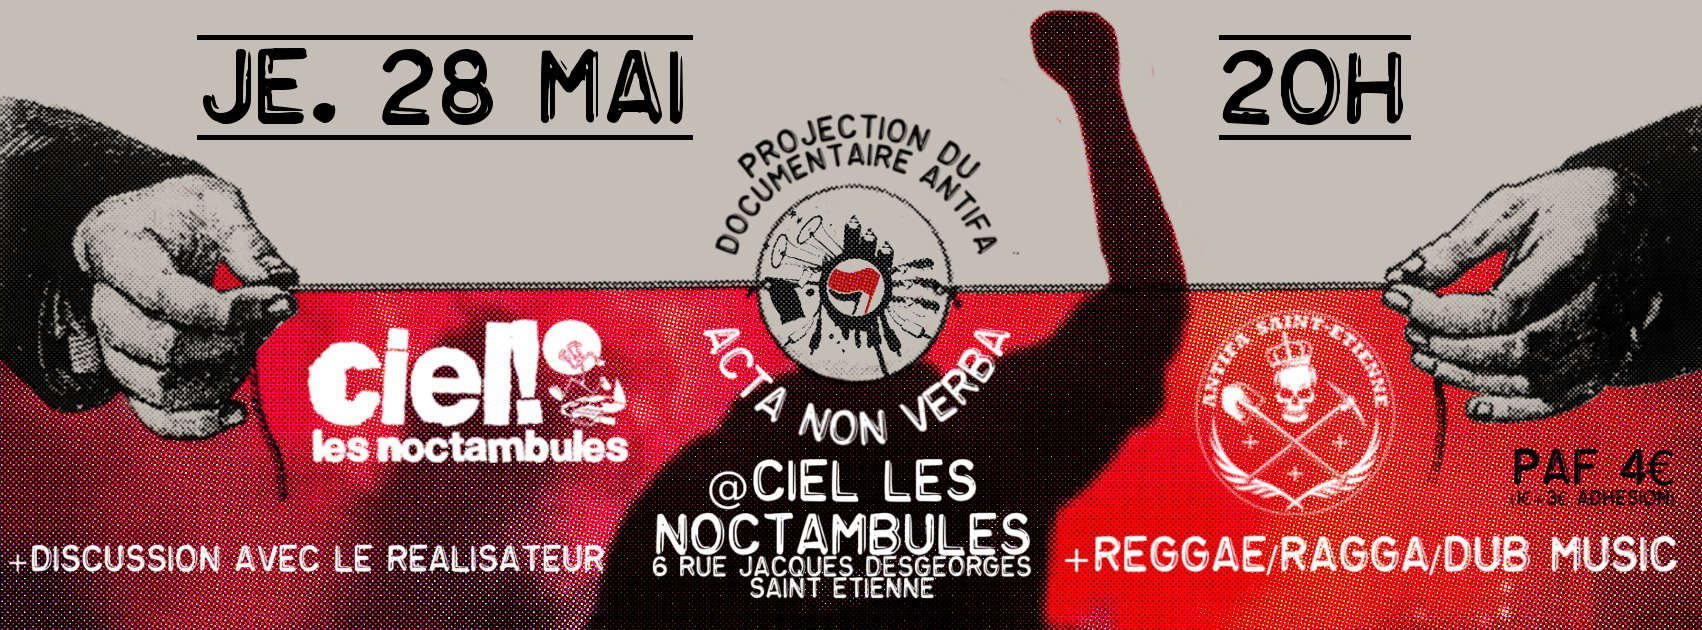 "PROJECTION DU DOCUMENTAIRE ""ACTA NON VERBA"" @ NOCTAMBULE"